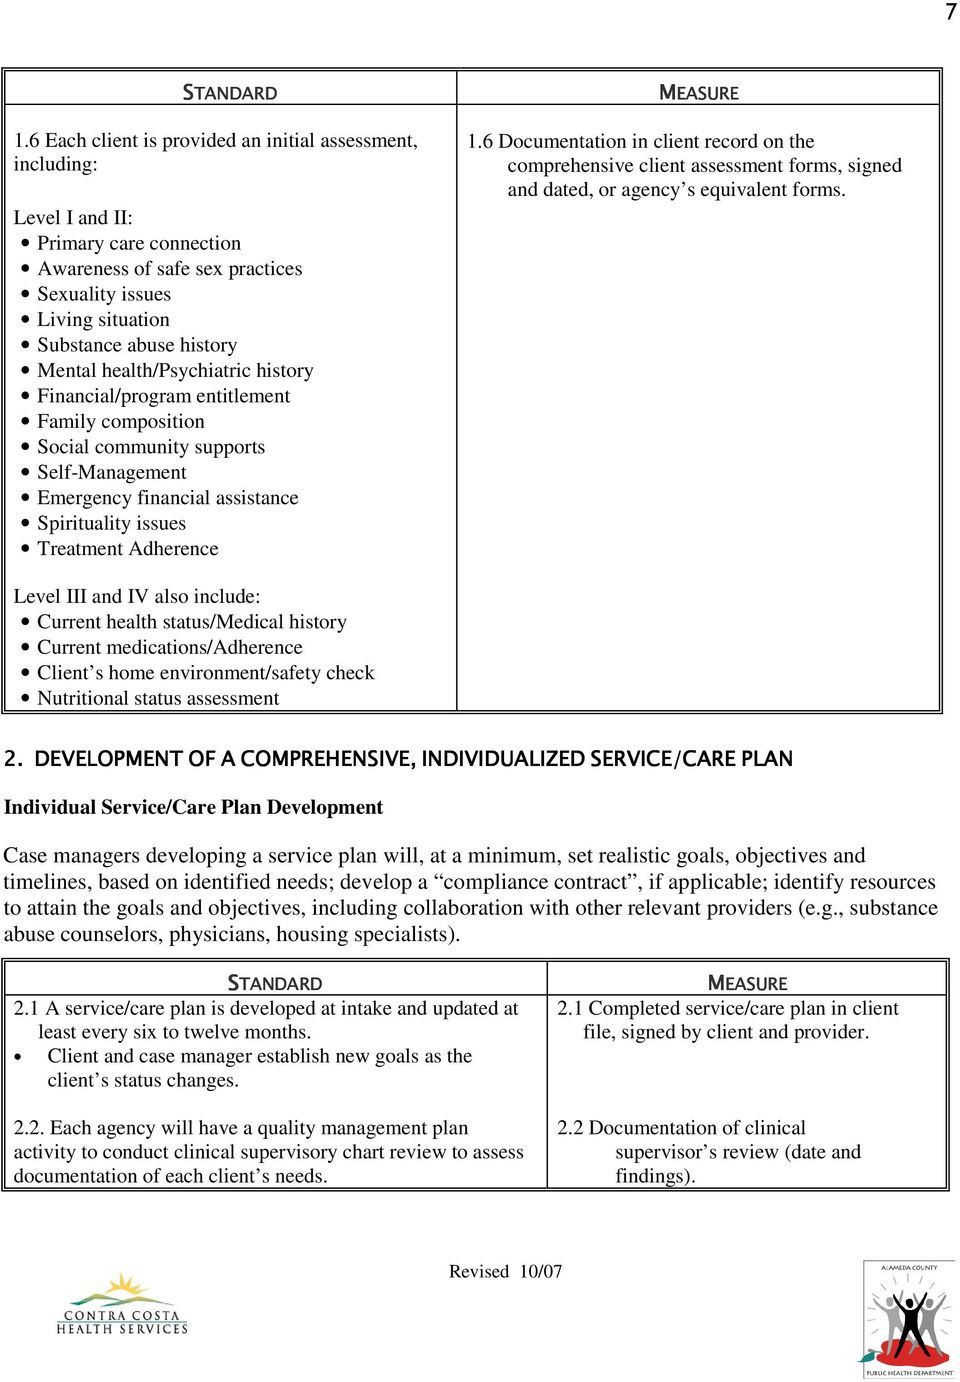 Case Management assessment Template